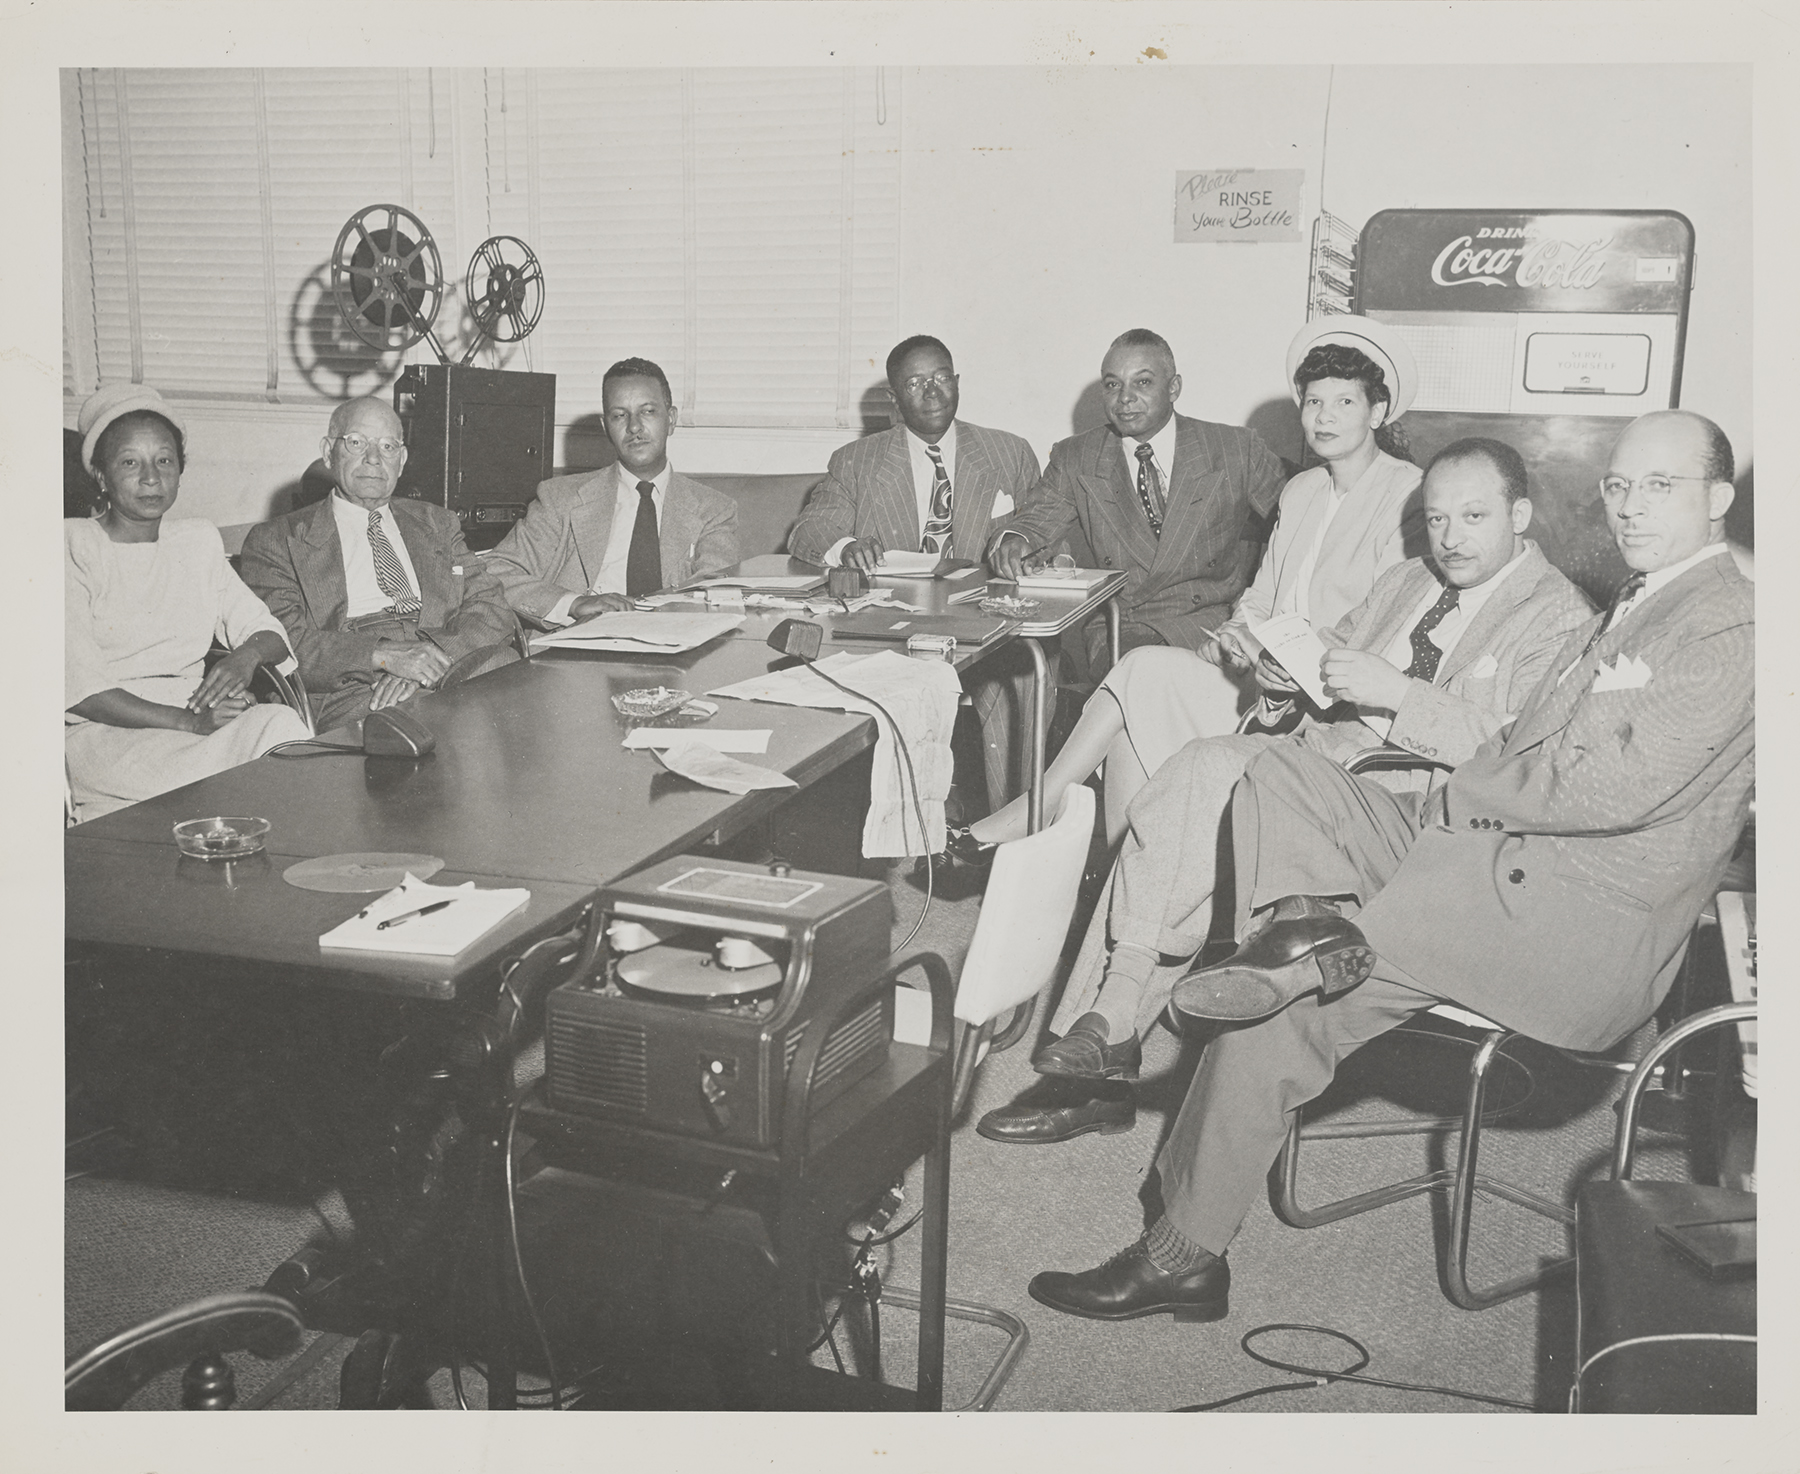 Conference with Mural Artists held at Golden State Mutual LIfe Insurance Company Home Office on September 7, 1948.